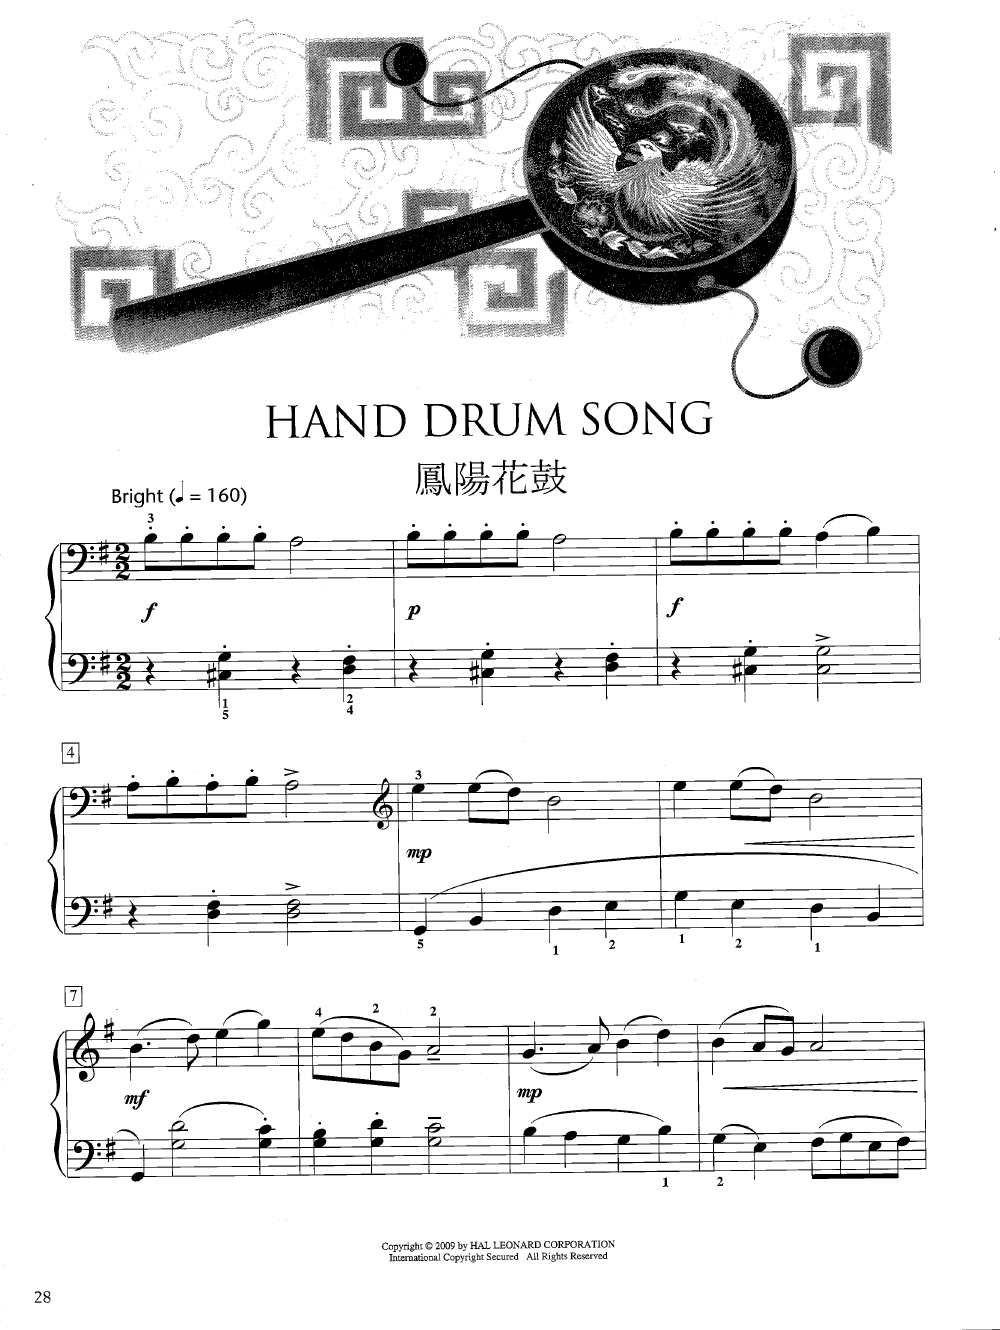 Numbered Scores (JianPu 简谱): Chinese Songs